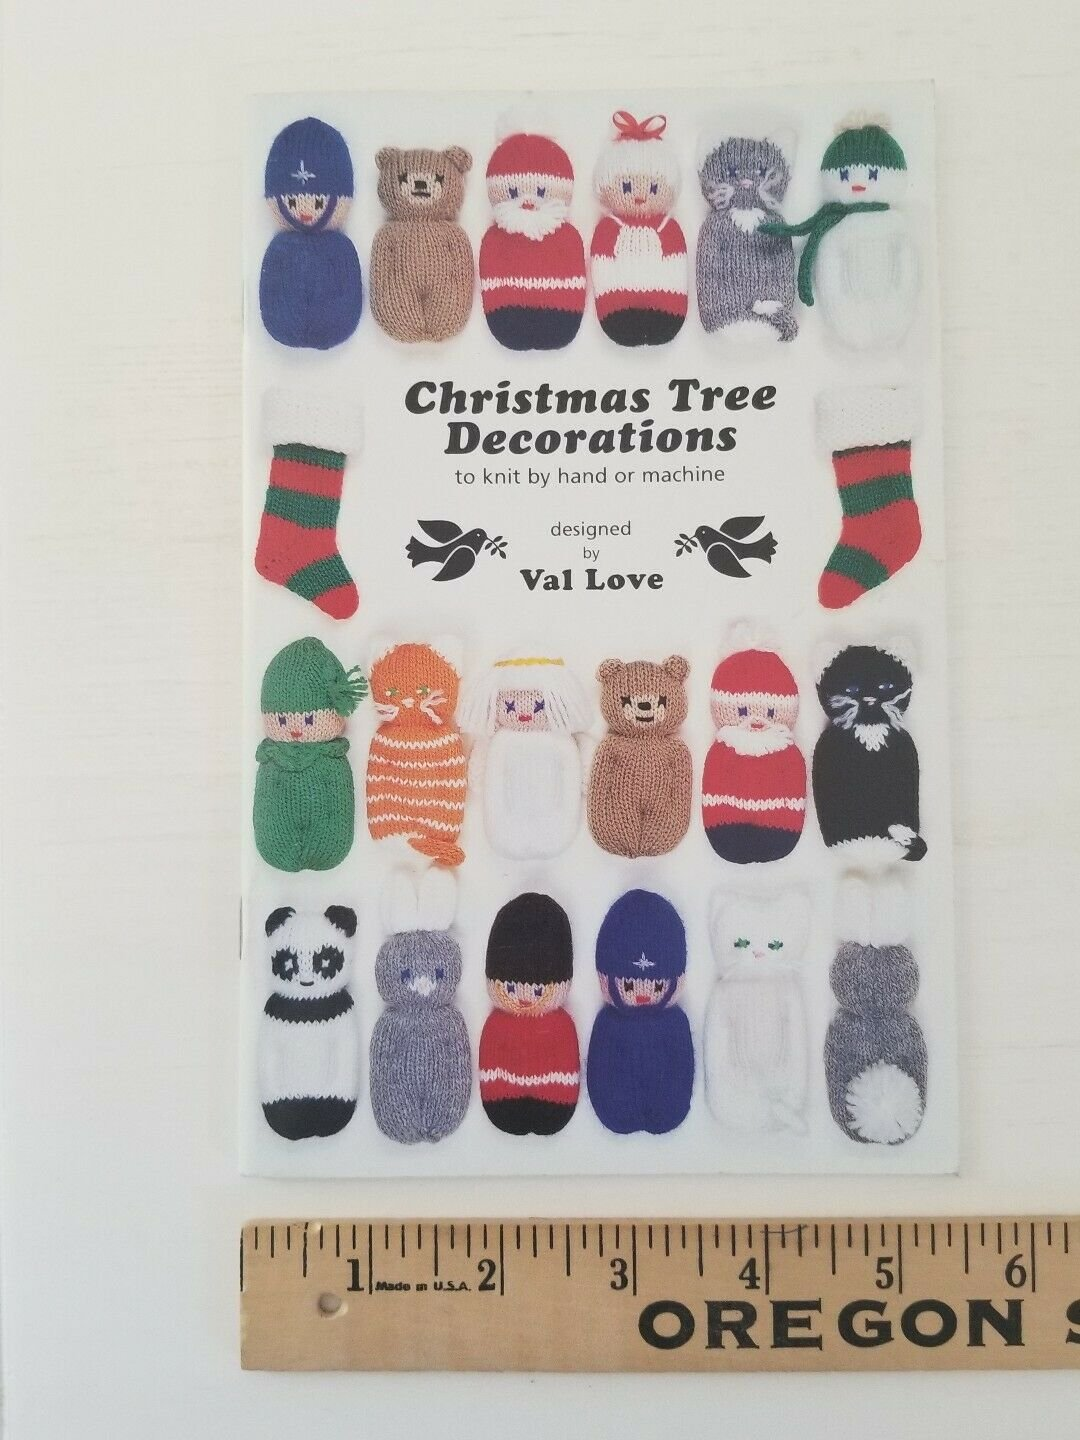 Val Love Christmas Tree Holiday Decorations To Knit By Hand Or Machine Booklet